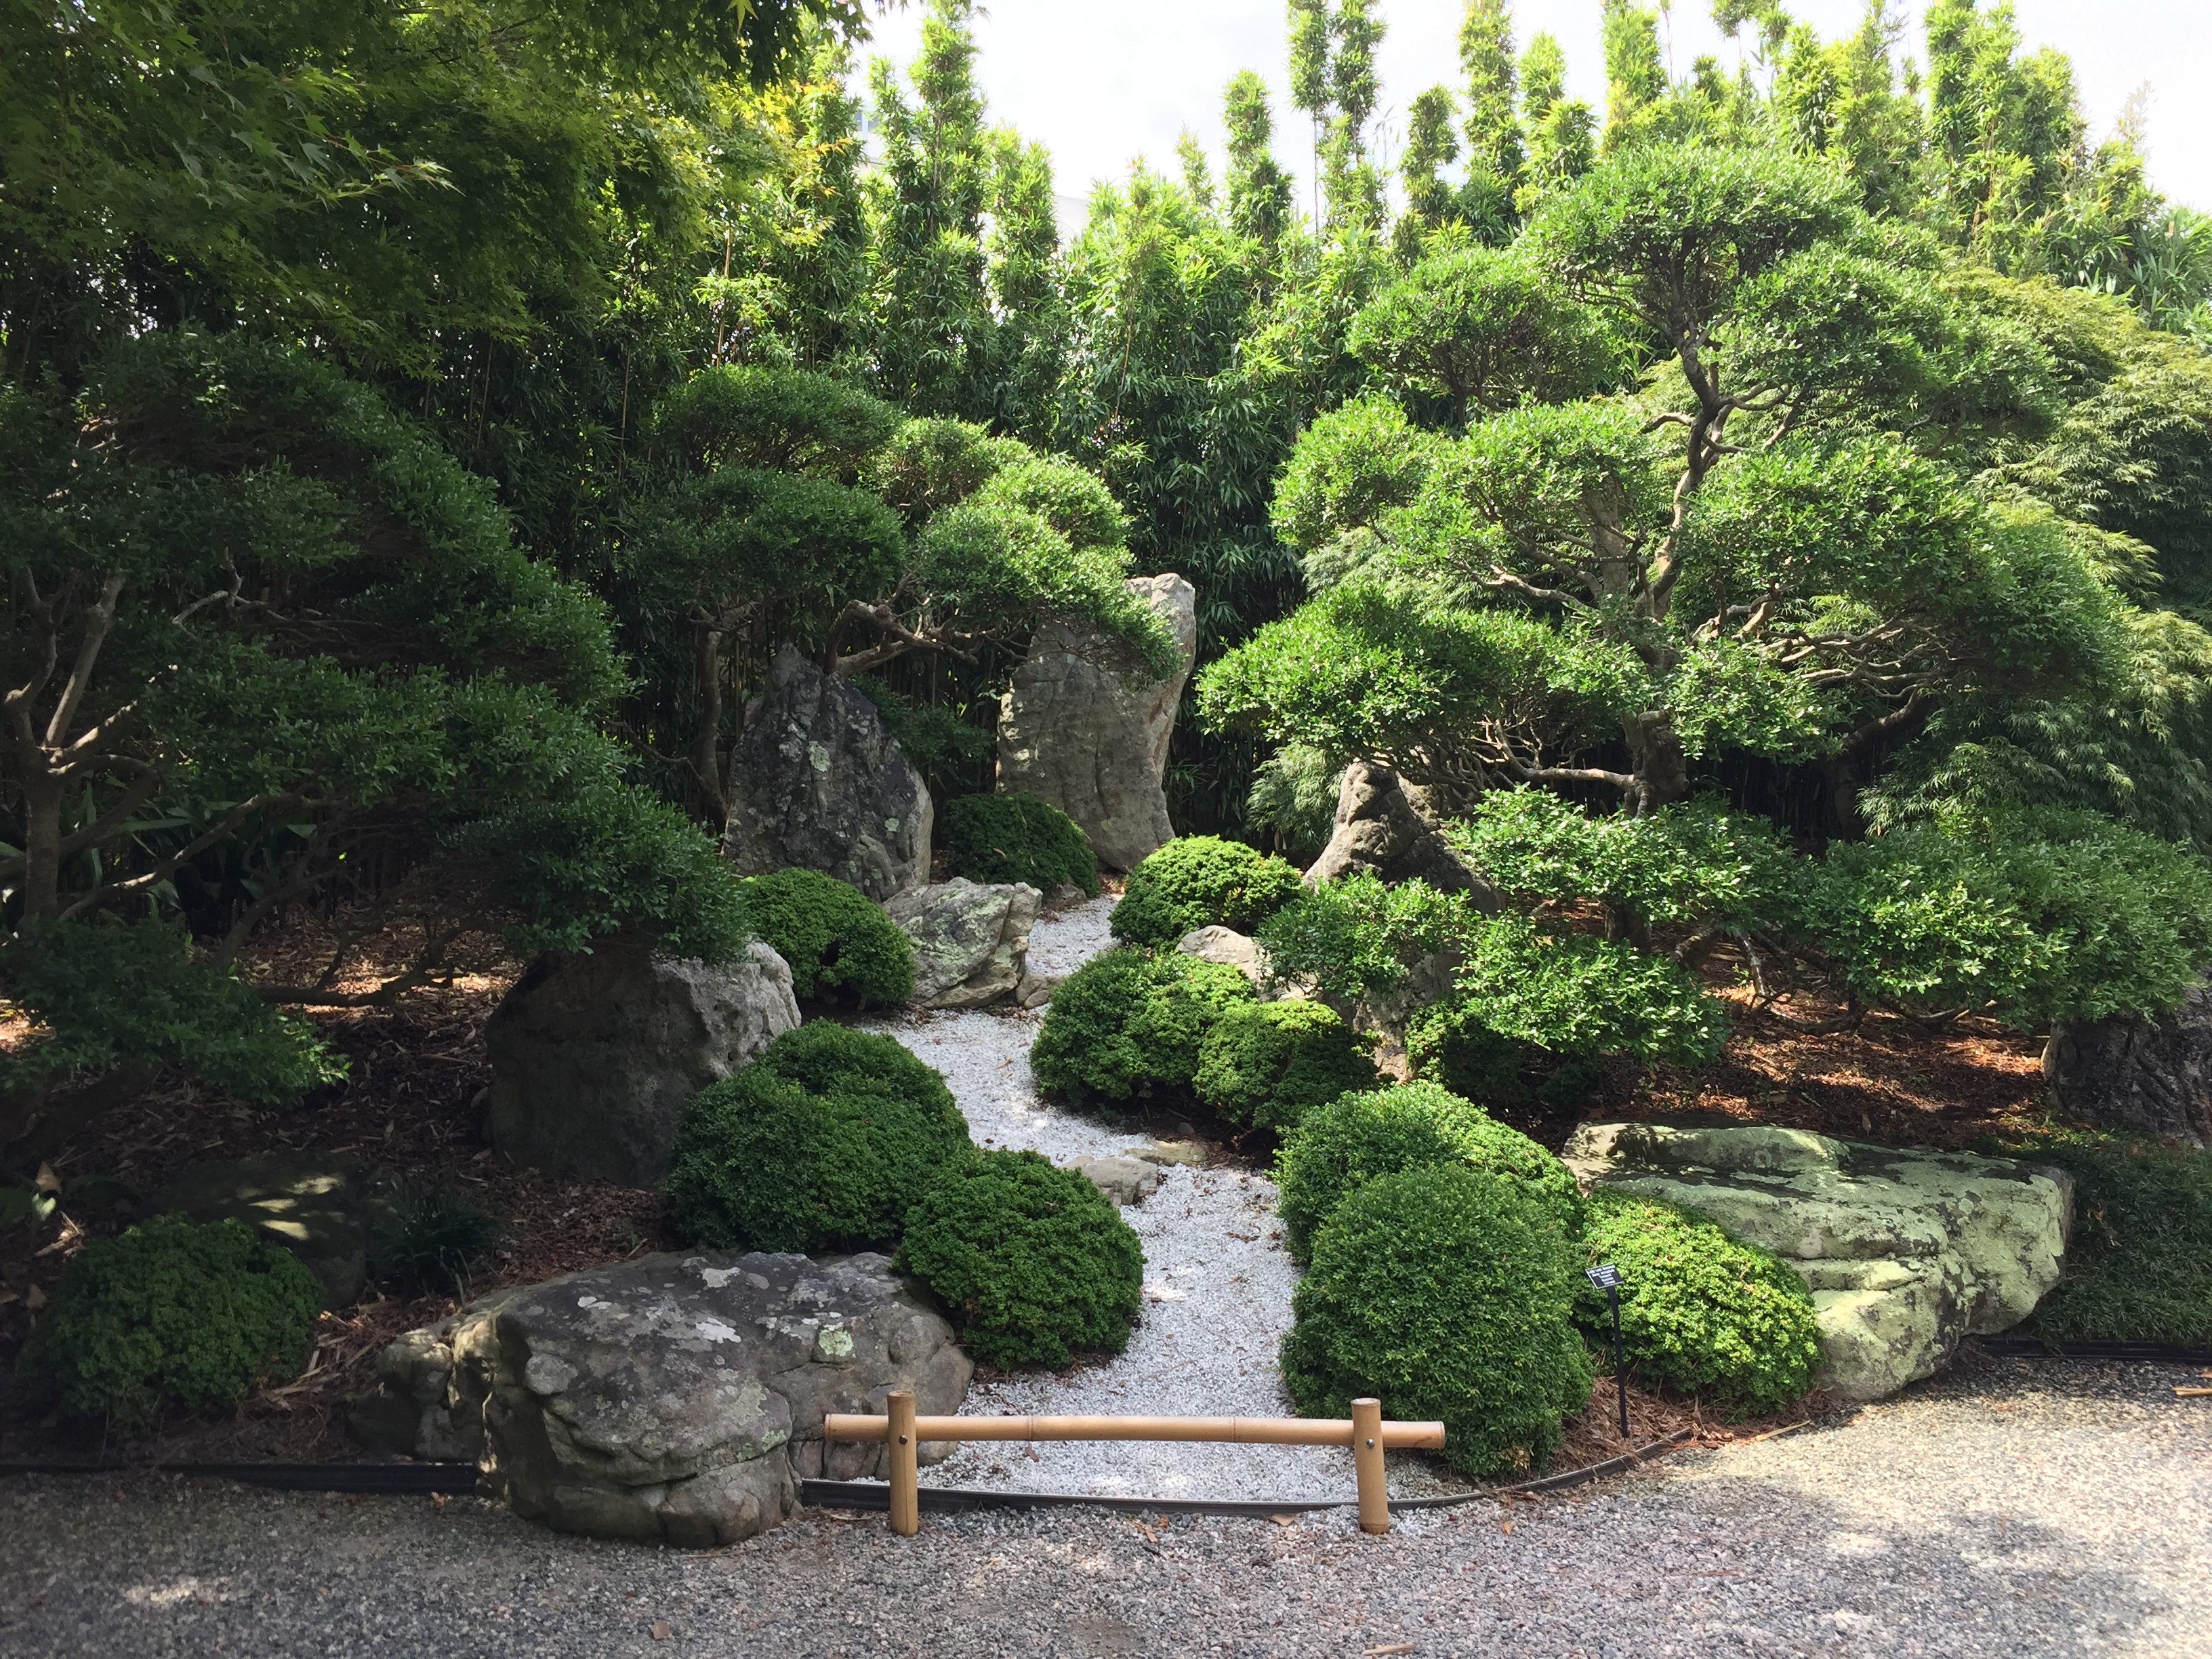 Evergreen plants are combined with stones in the Japanese Garden. Photo © 2018 Elaine Mills.